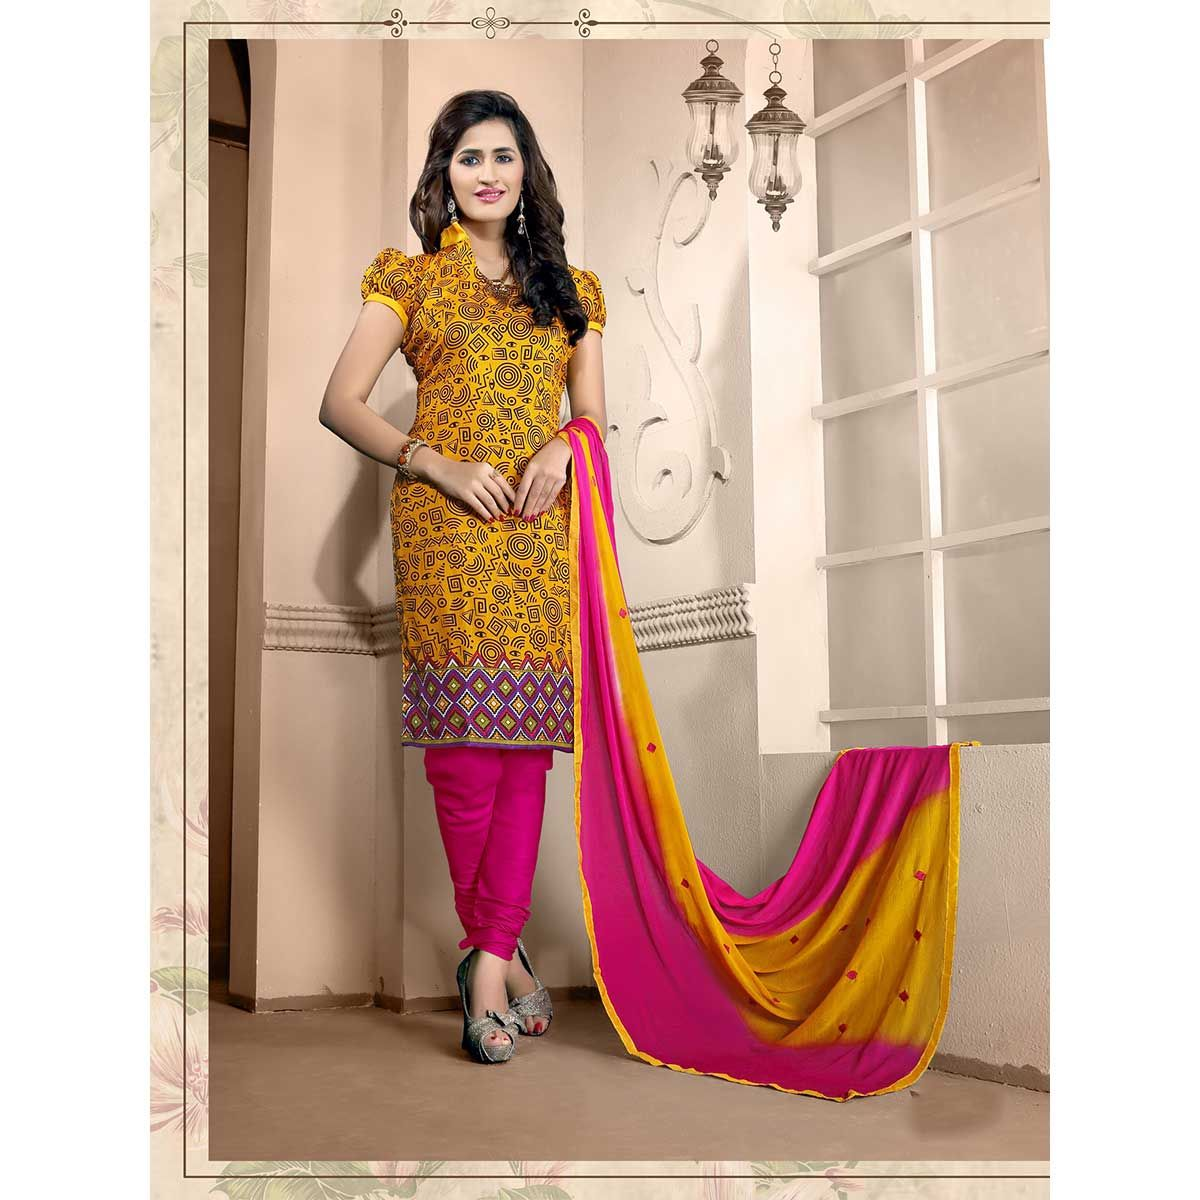 http://www.thatsend.com/ate/shopping/lp/fvp/TESG96368/i/TE116500/iu/yellow-silk-churidar-salwar-kameez  Yellow Silk Churidar Salwar Kameez Apparel Pattern Printed. Stiching Type Unstitched. Work Print. Occasion Festive. Top Color Yellow.